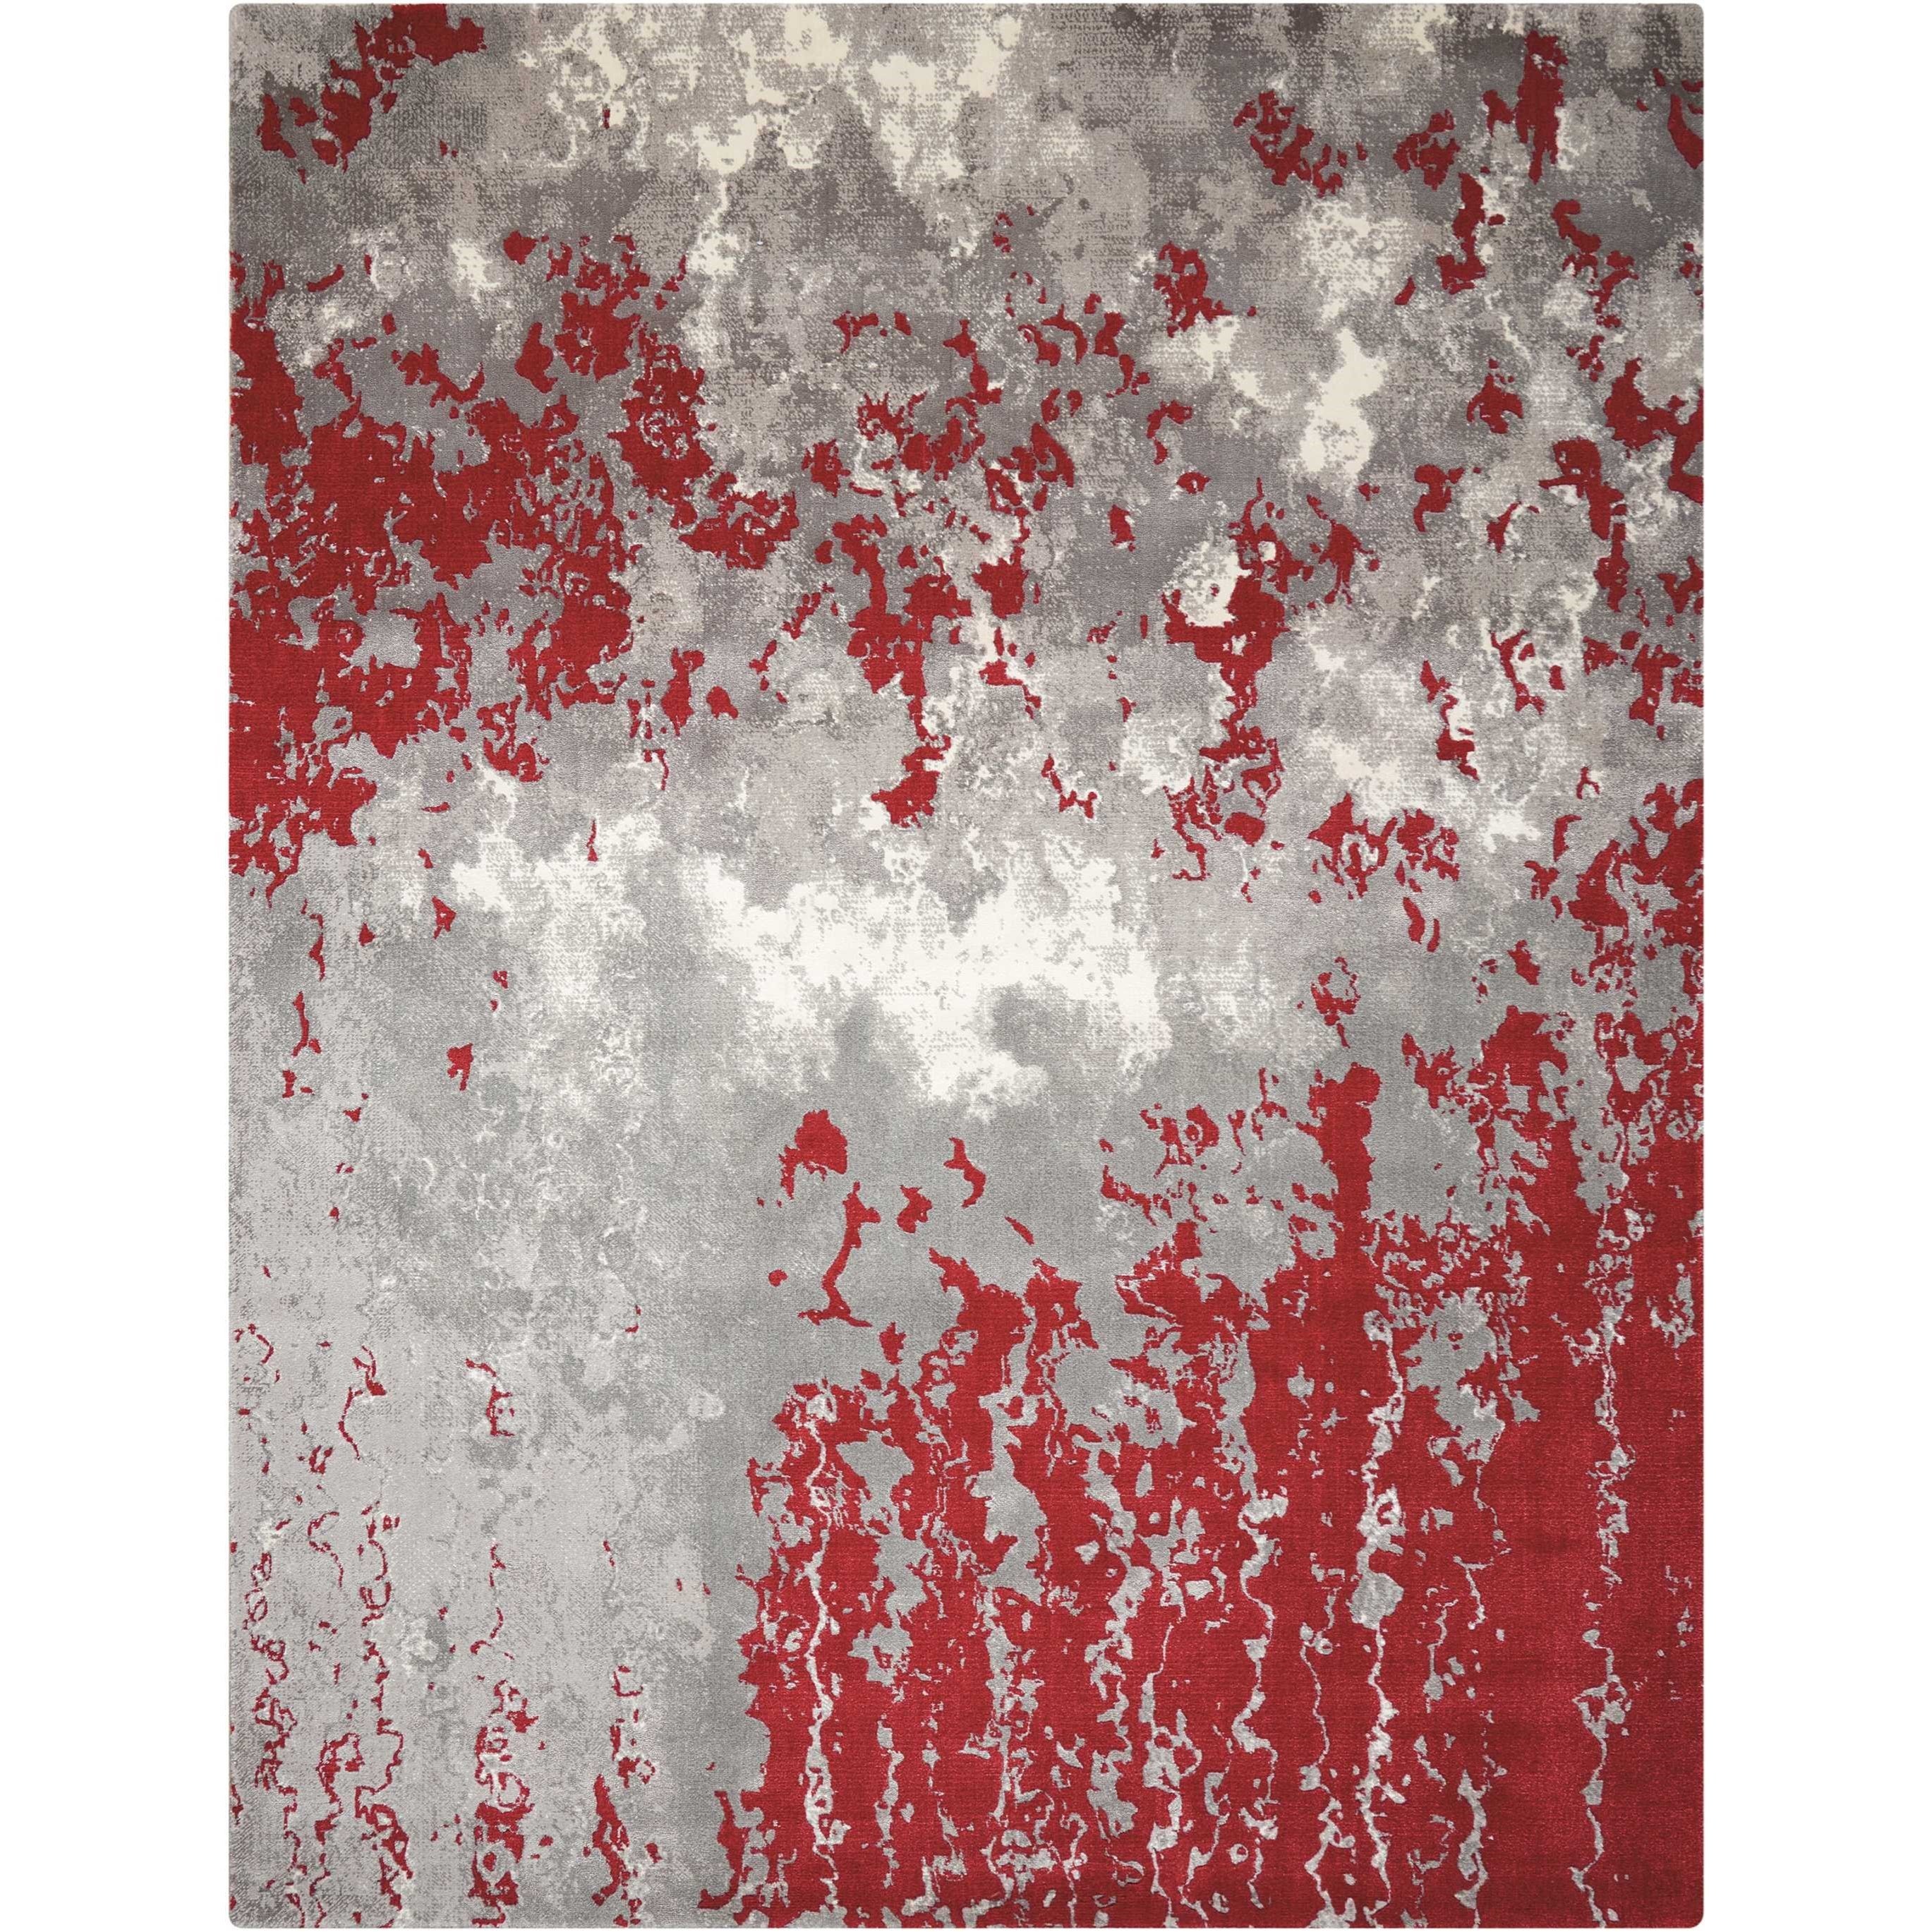 Twilight 9'x12' Oversized Rug by Nourison at Home Collections Furniture